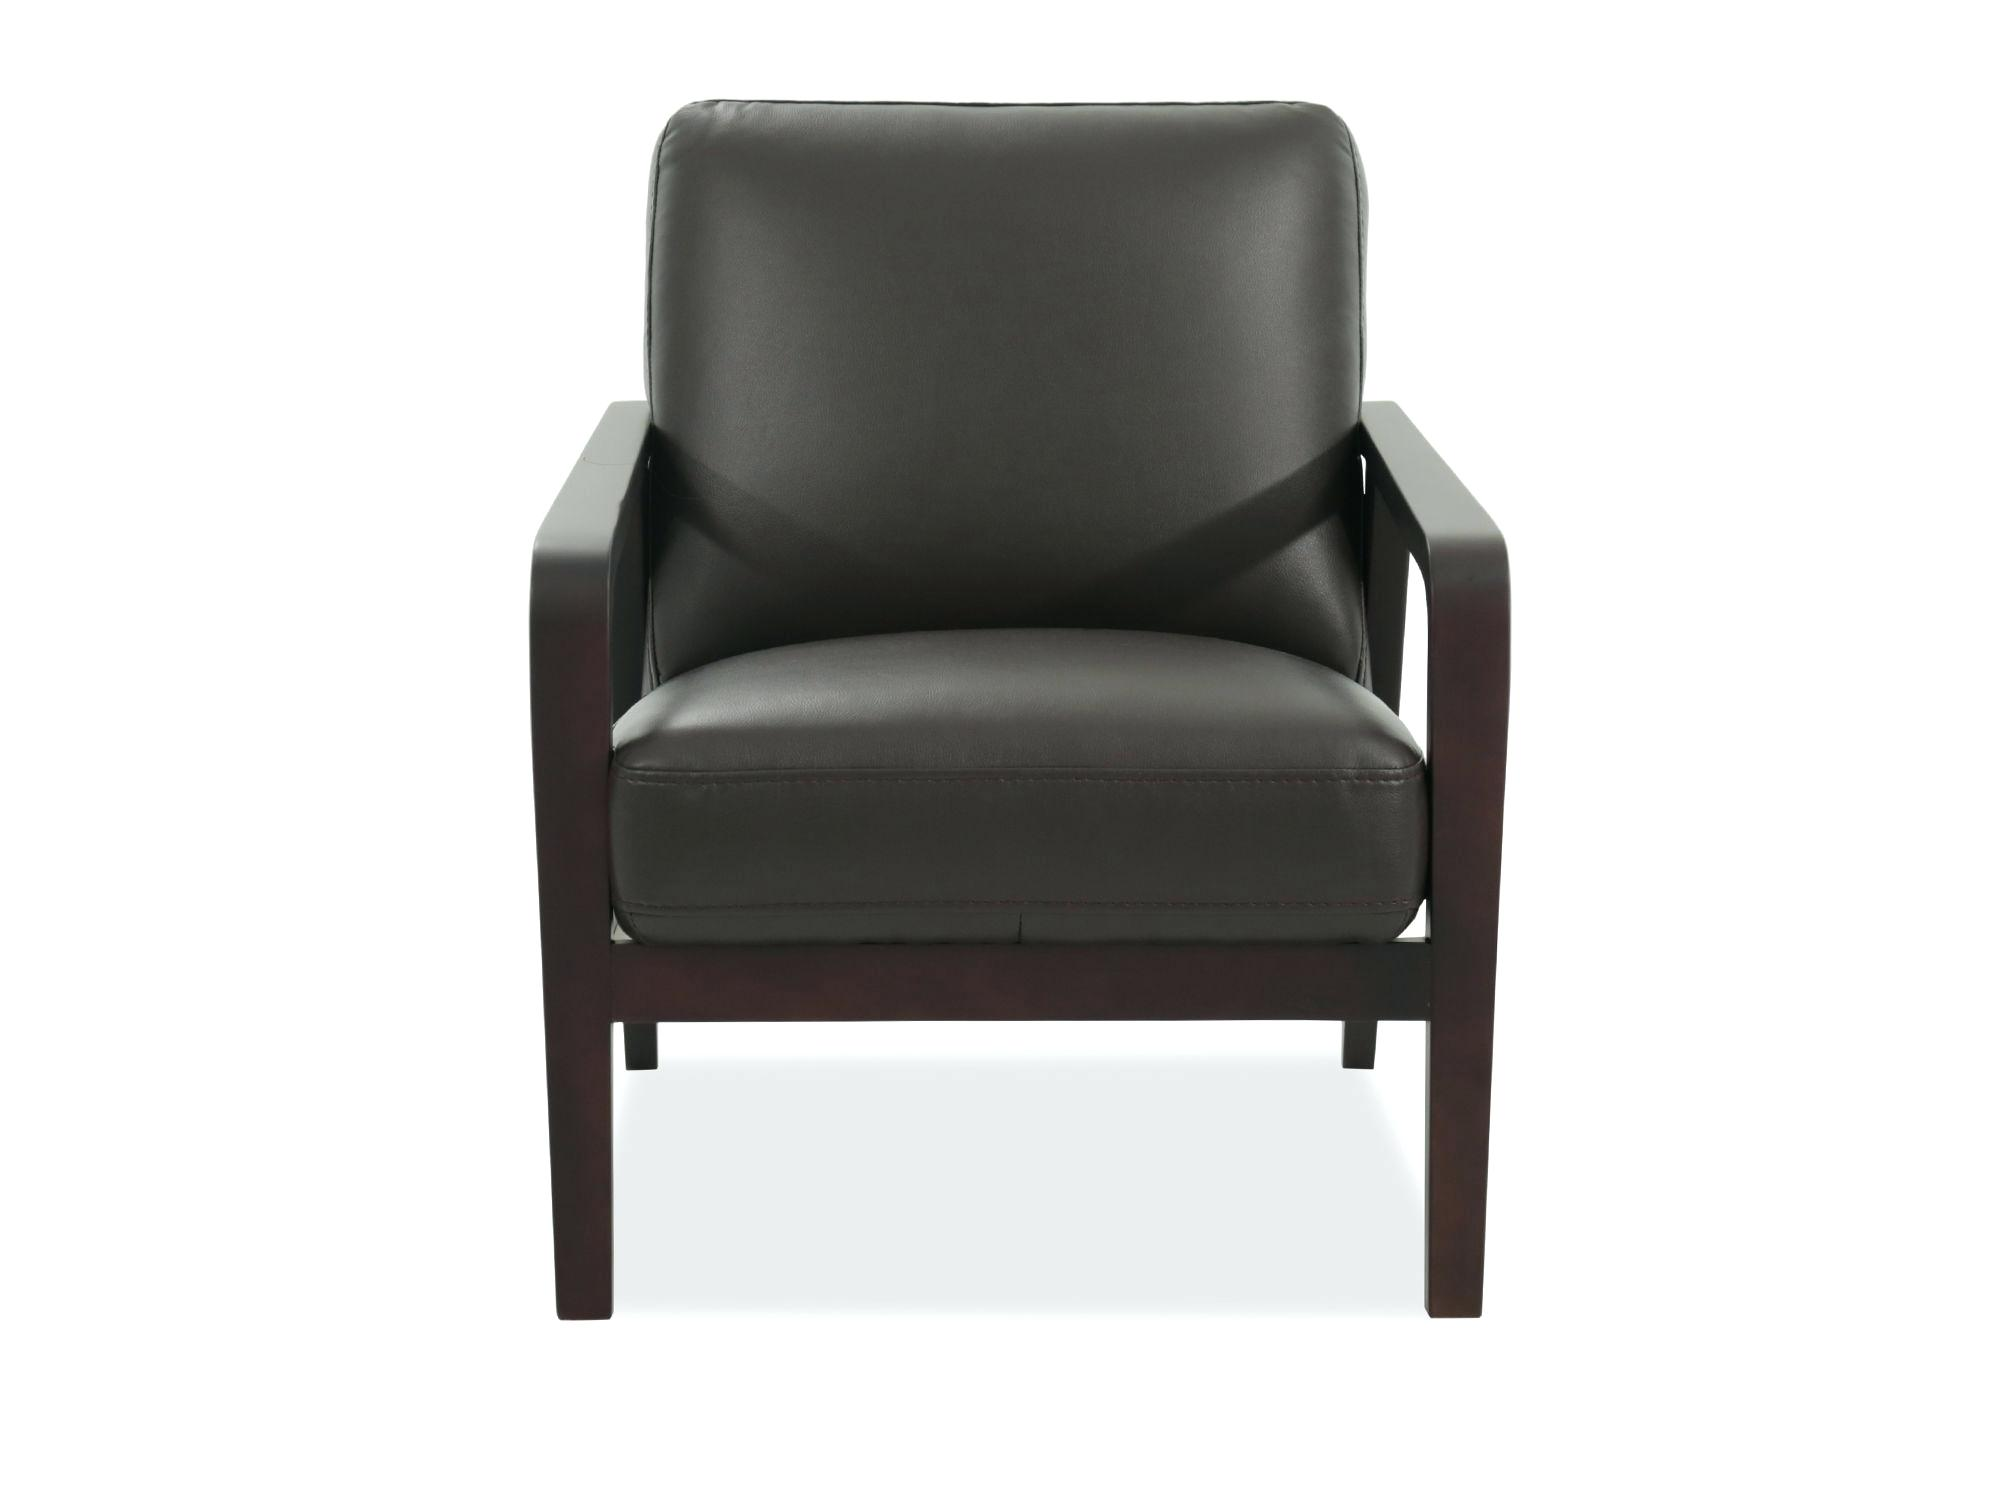 Mathis Brothers Furniture Oklahoma City Casual Accent Chair Mathis Brothers Outdoor  Furniture Oklahoma City